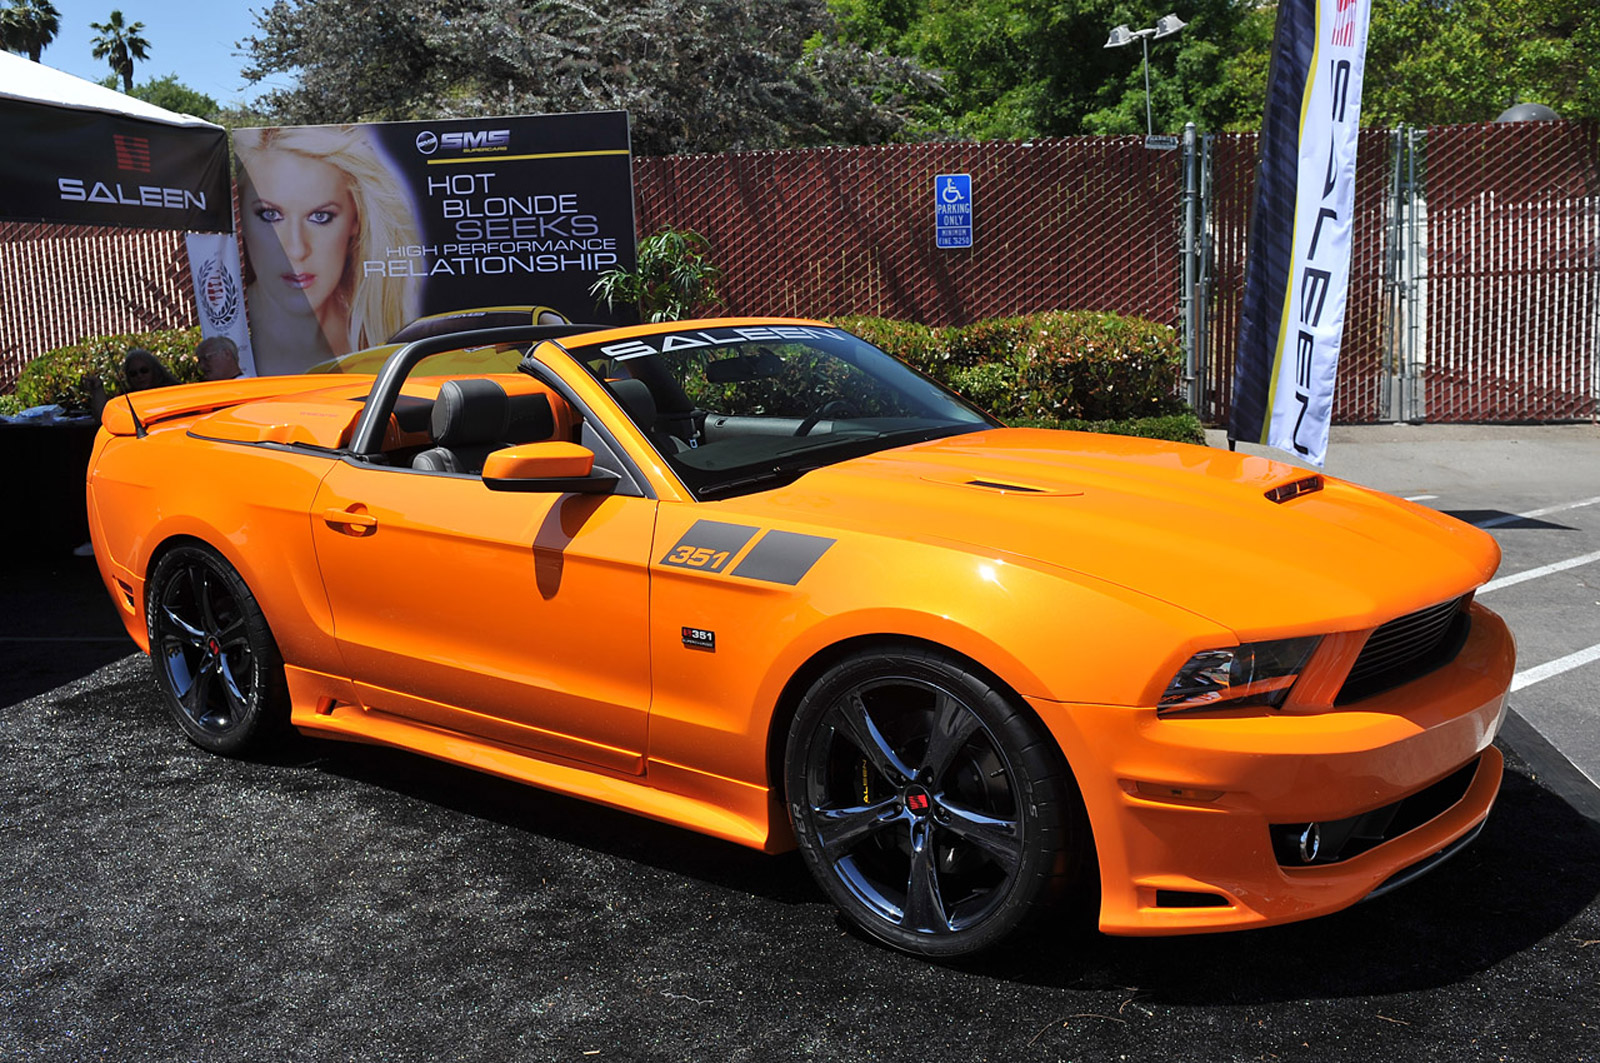 Fords For Sale >> Saleen 351 Mustang Makes A Return In Prototype Form